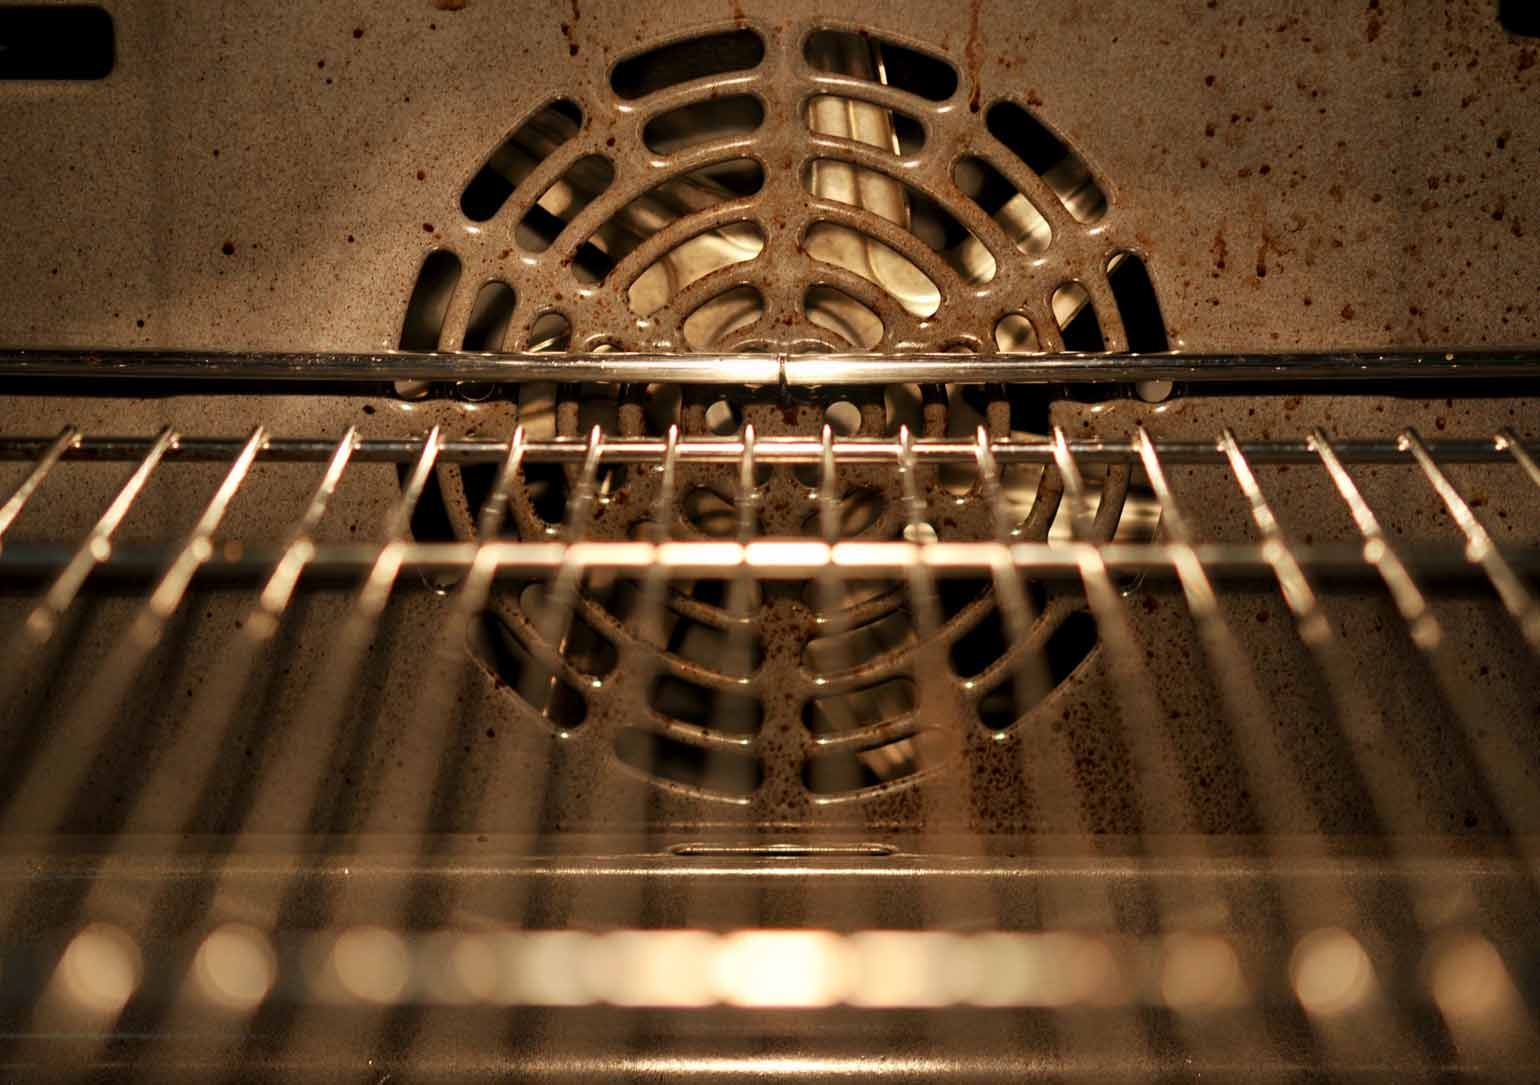 Domestic oven cleaning services in Northampton